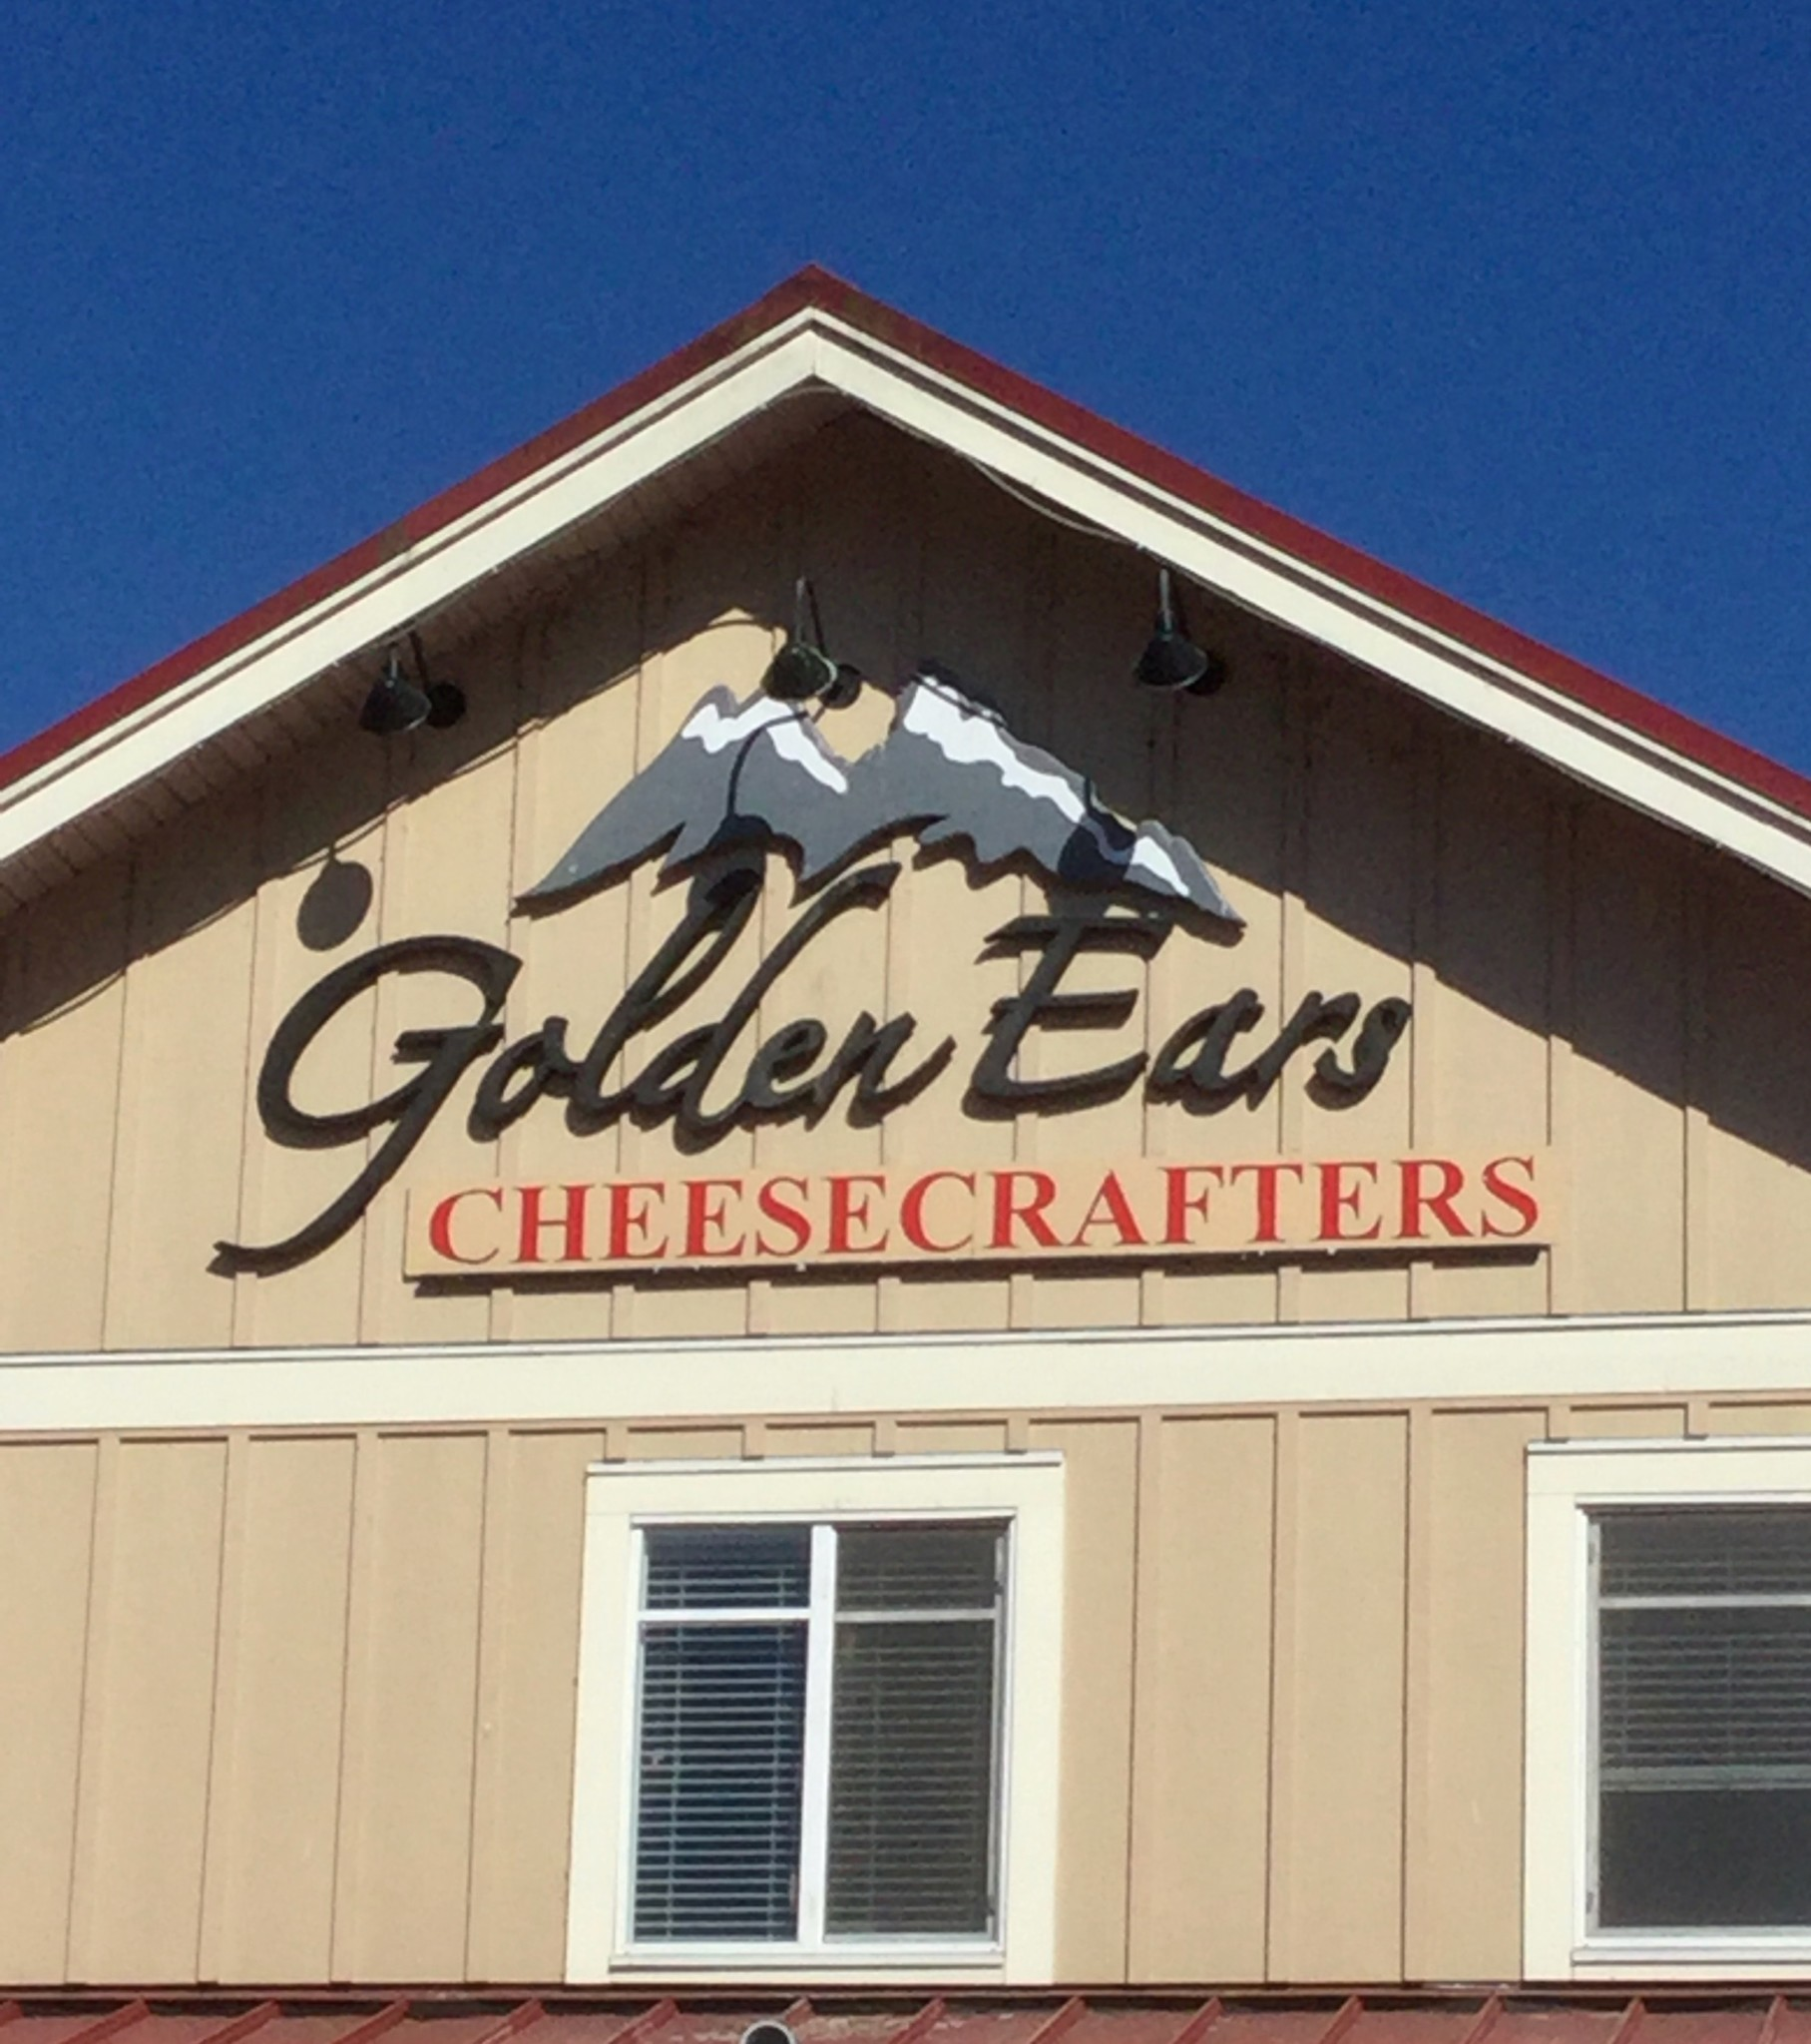 Long Table Event at Golden Ears Cheese Crafters